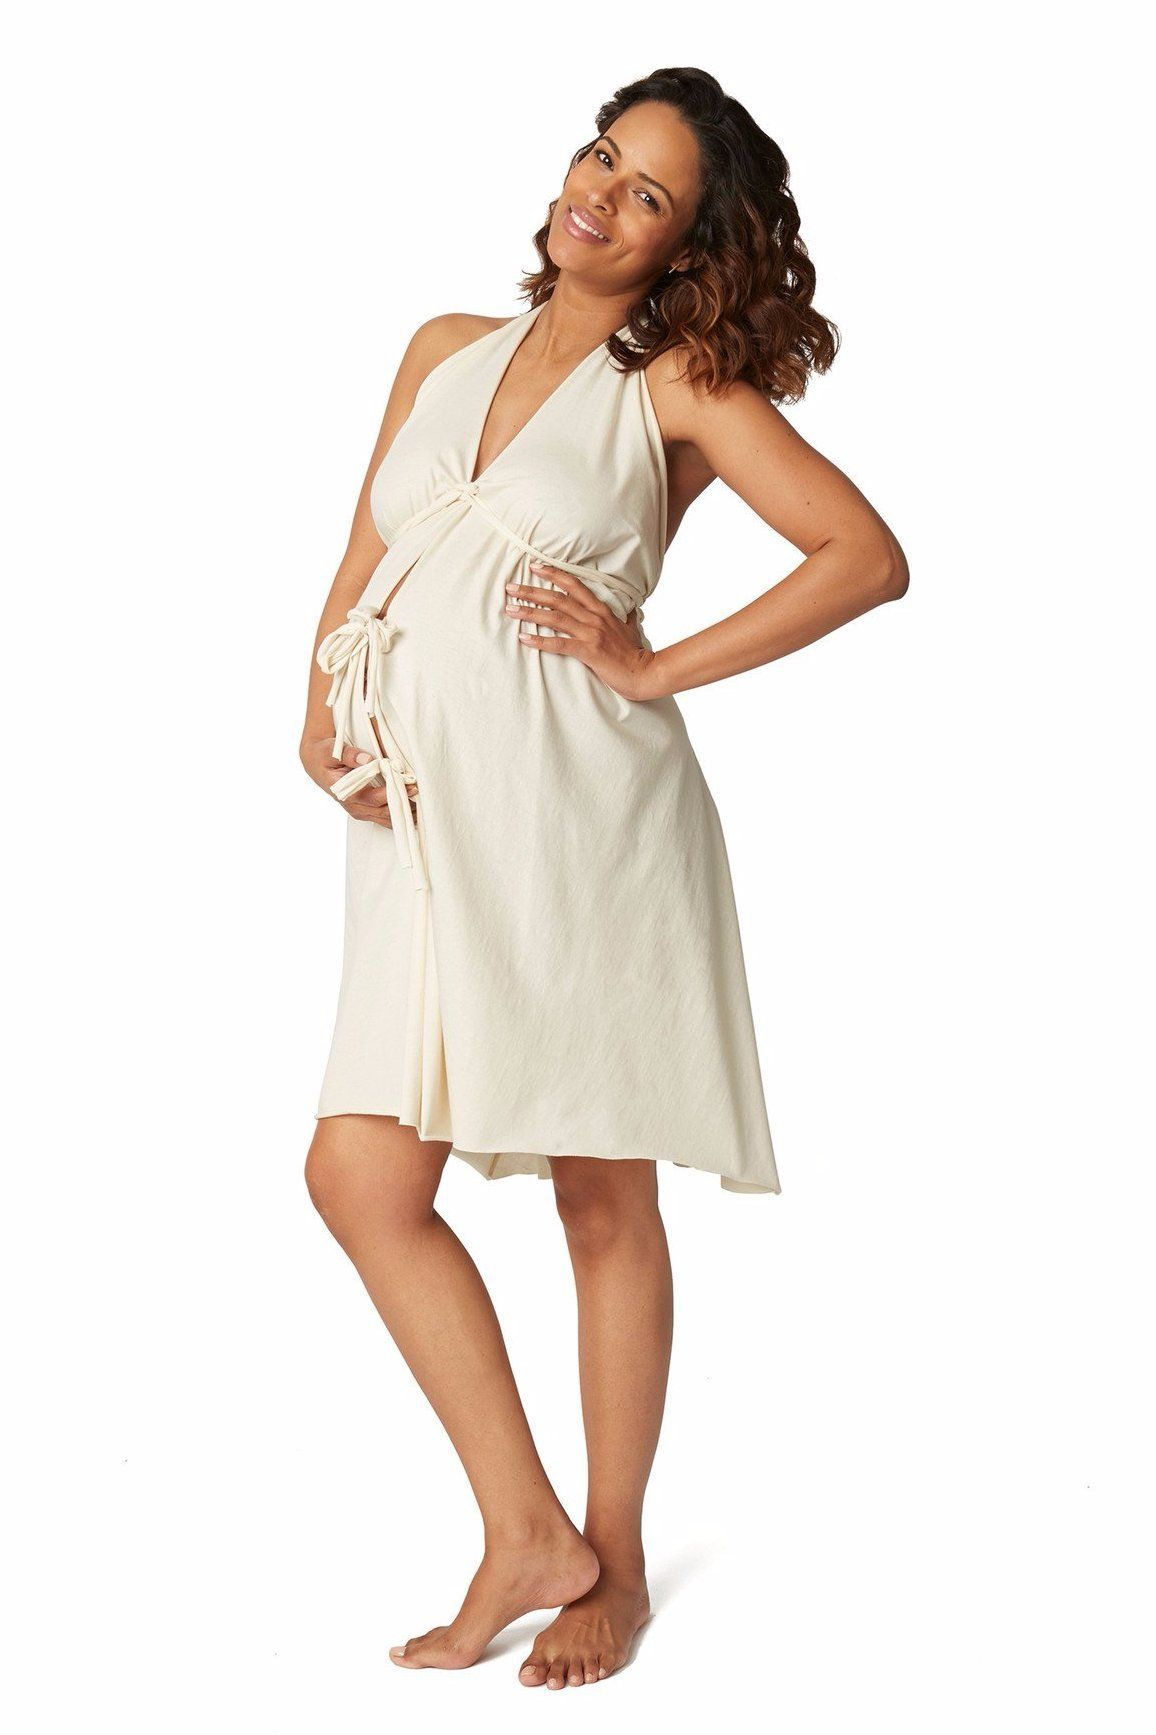 Original Labor & Delivery Gowns - Unbleached Cream / One Size (2-16 ...